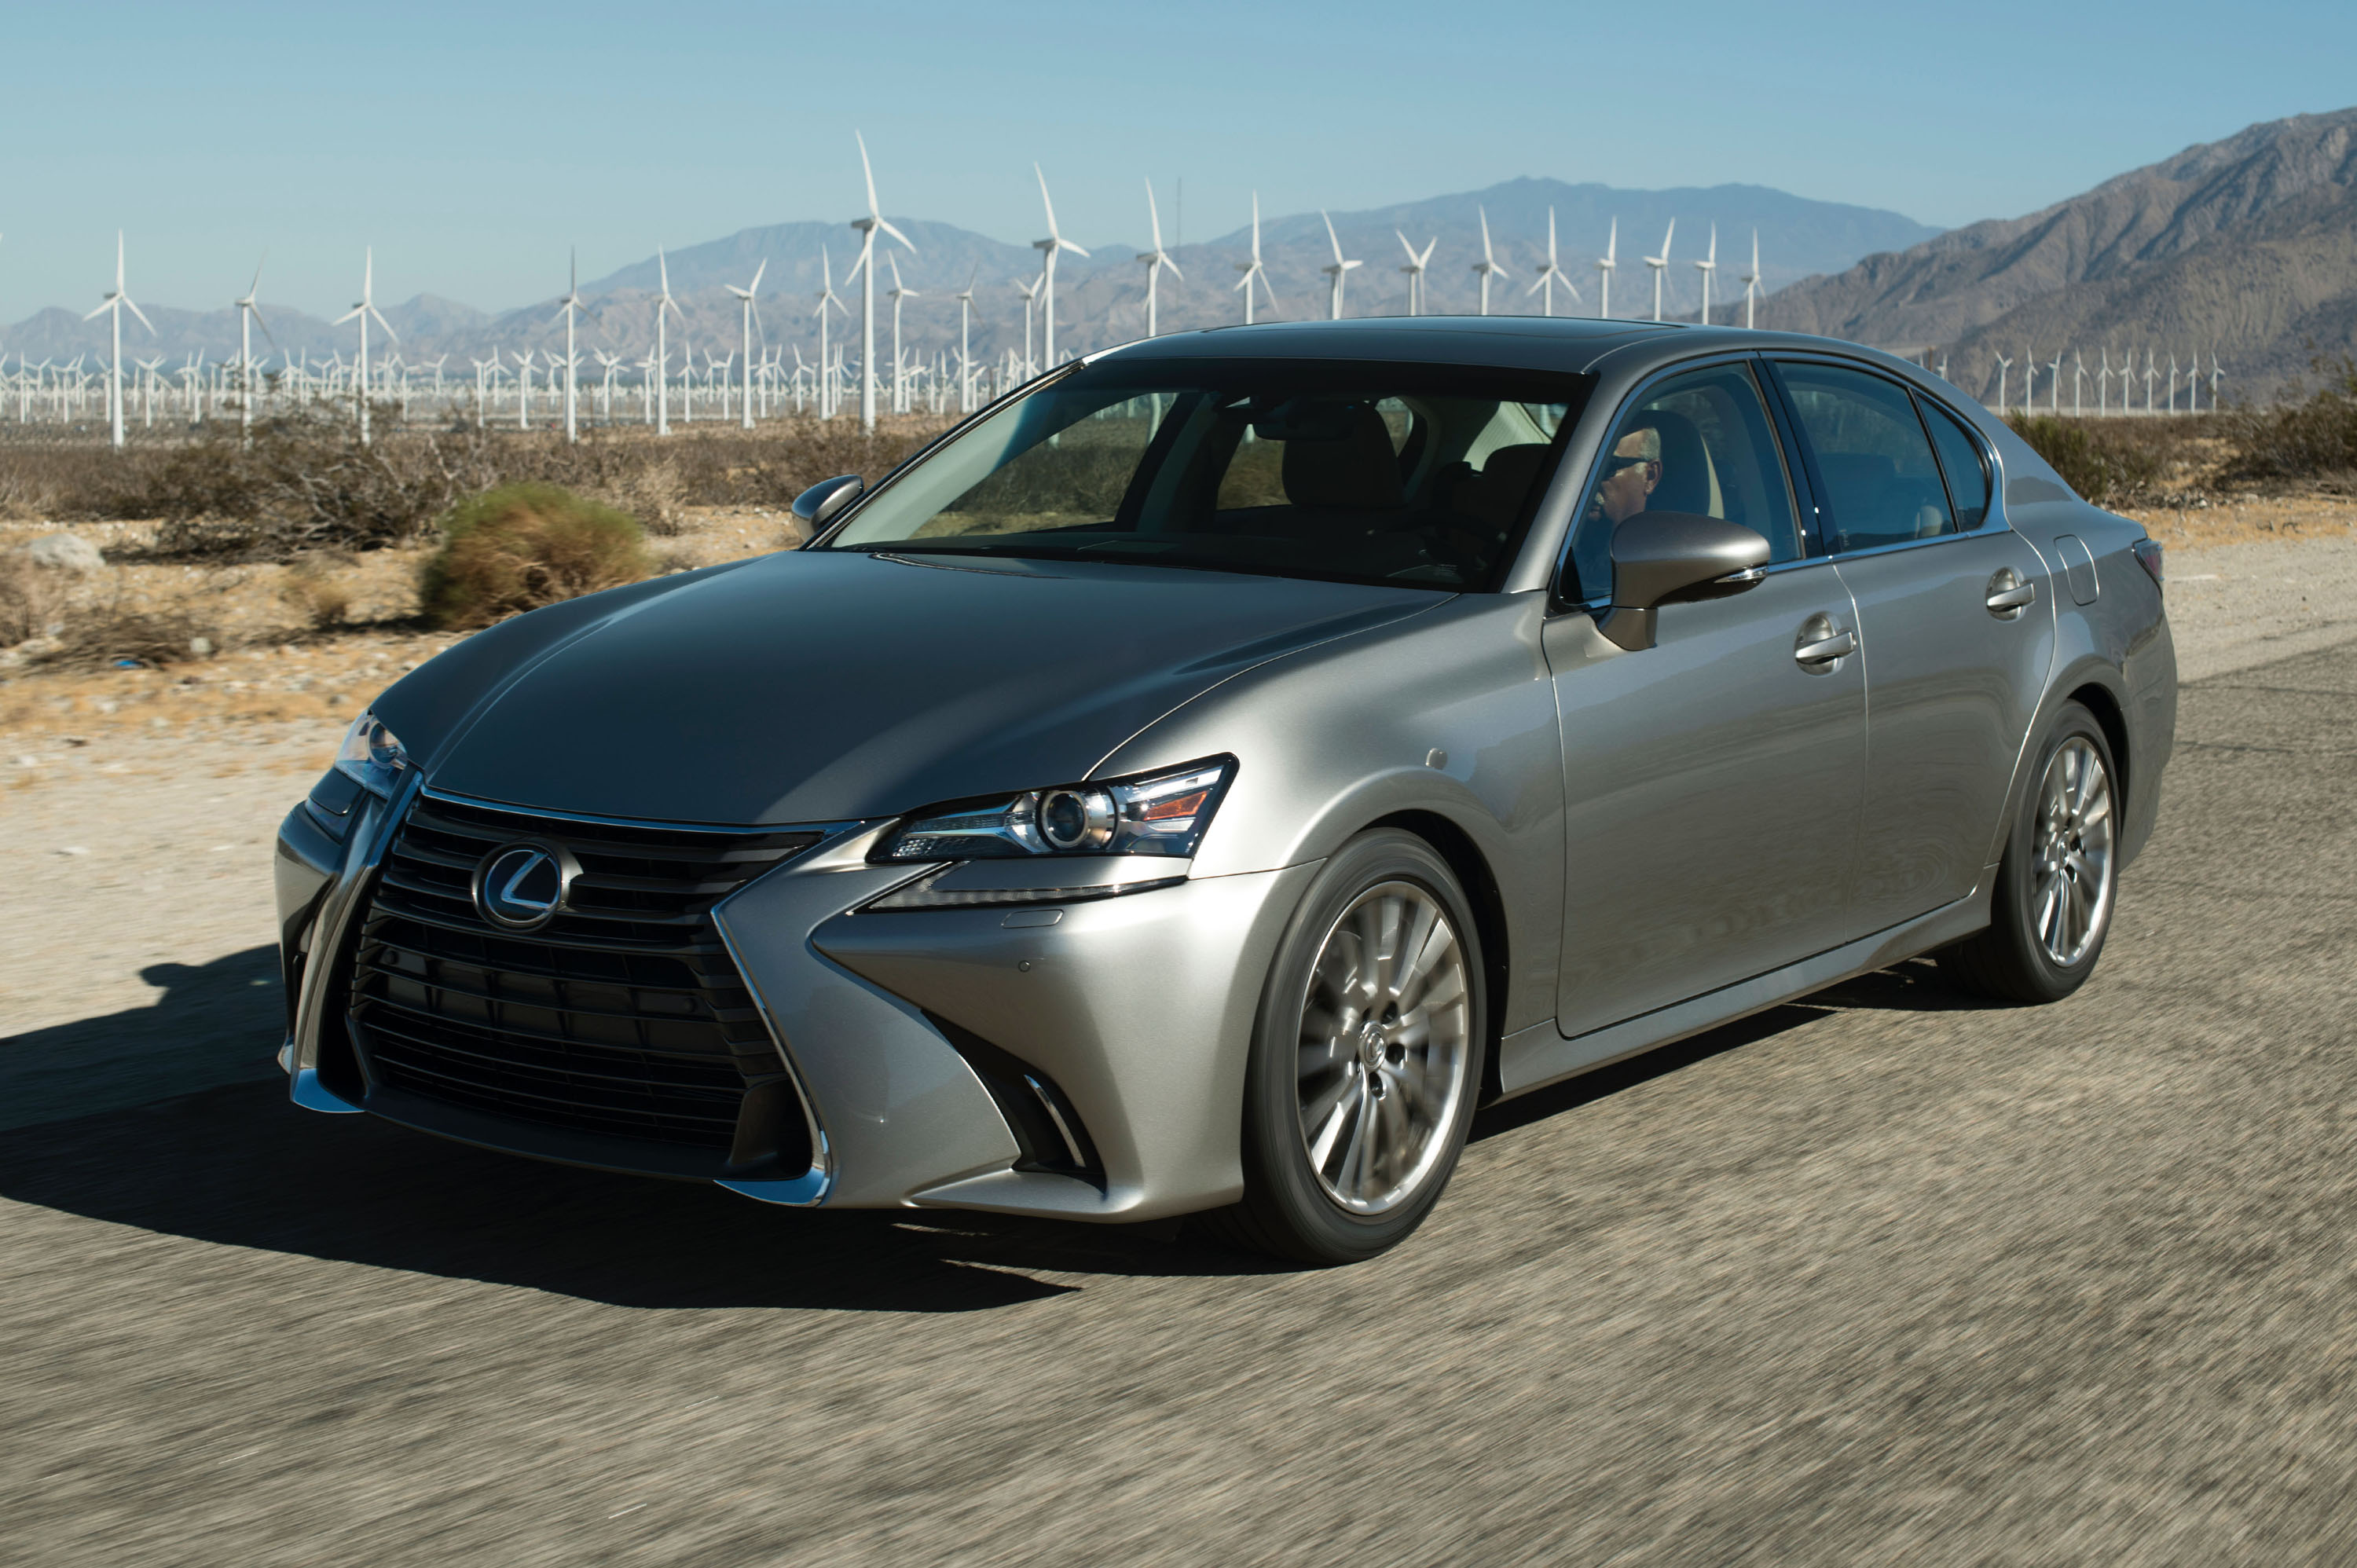 2016 lexus gs comes to pebble beach with new 200t rwd version autoevolution. Black Bedroom Furniture Sets. Home Design Ideas